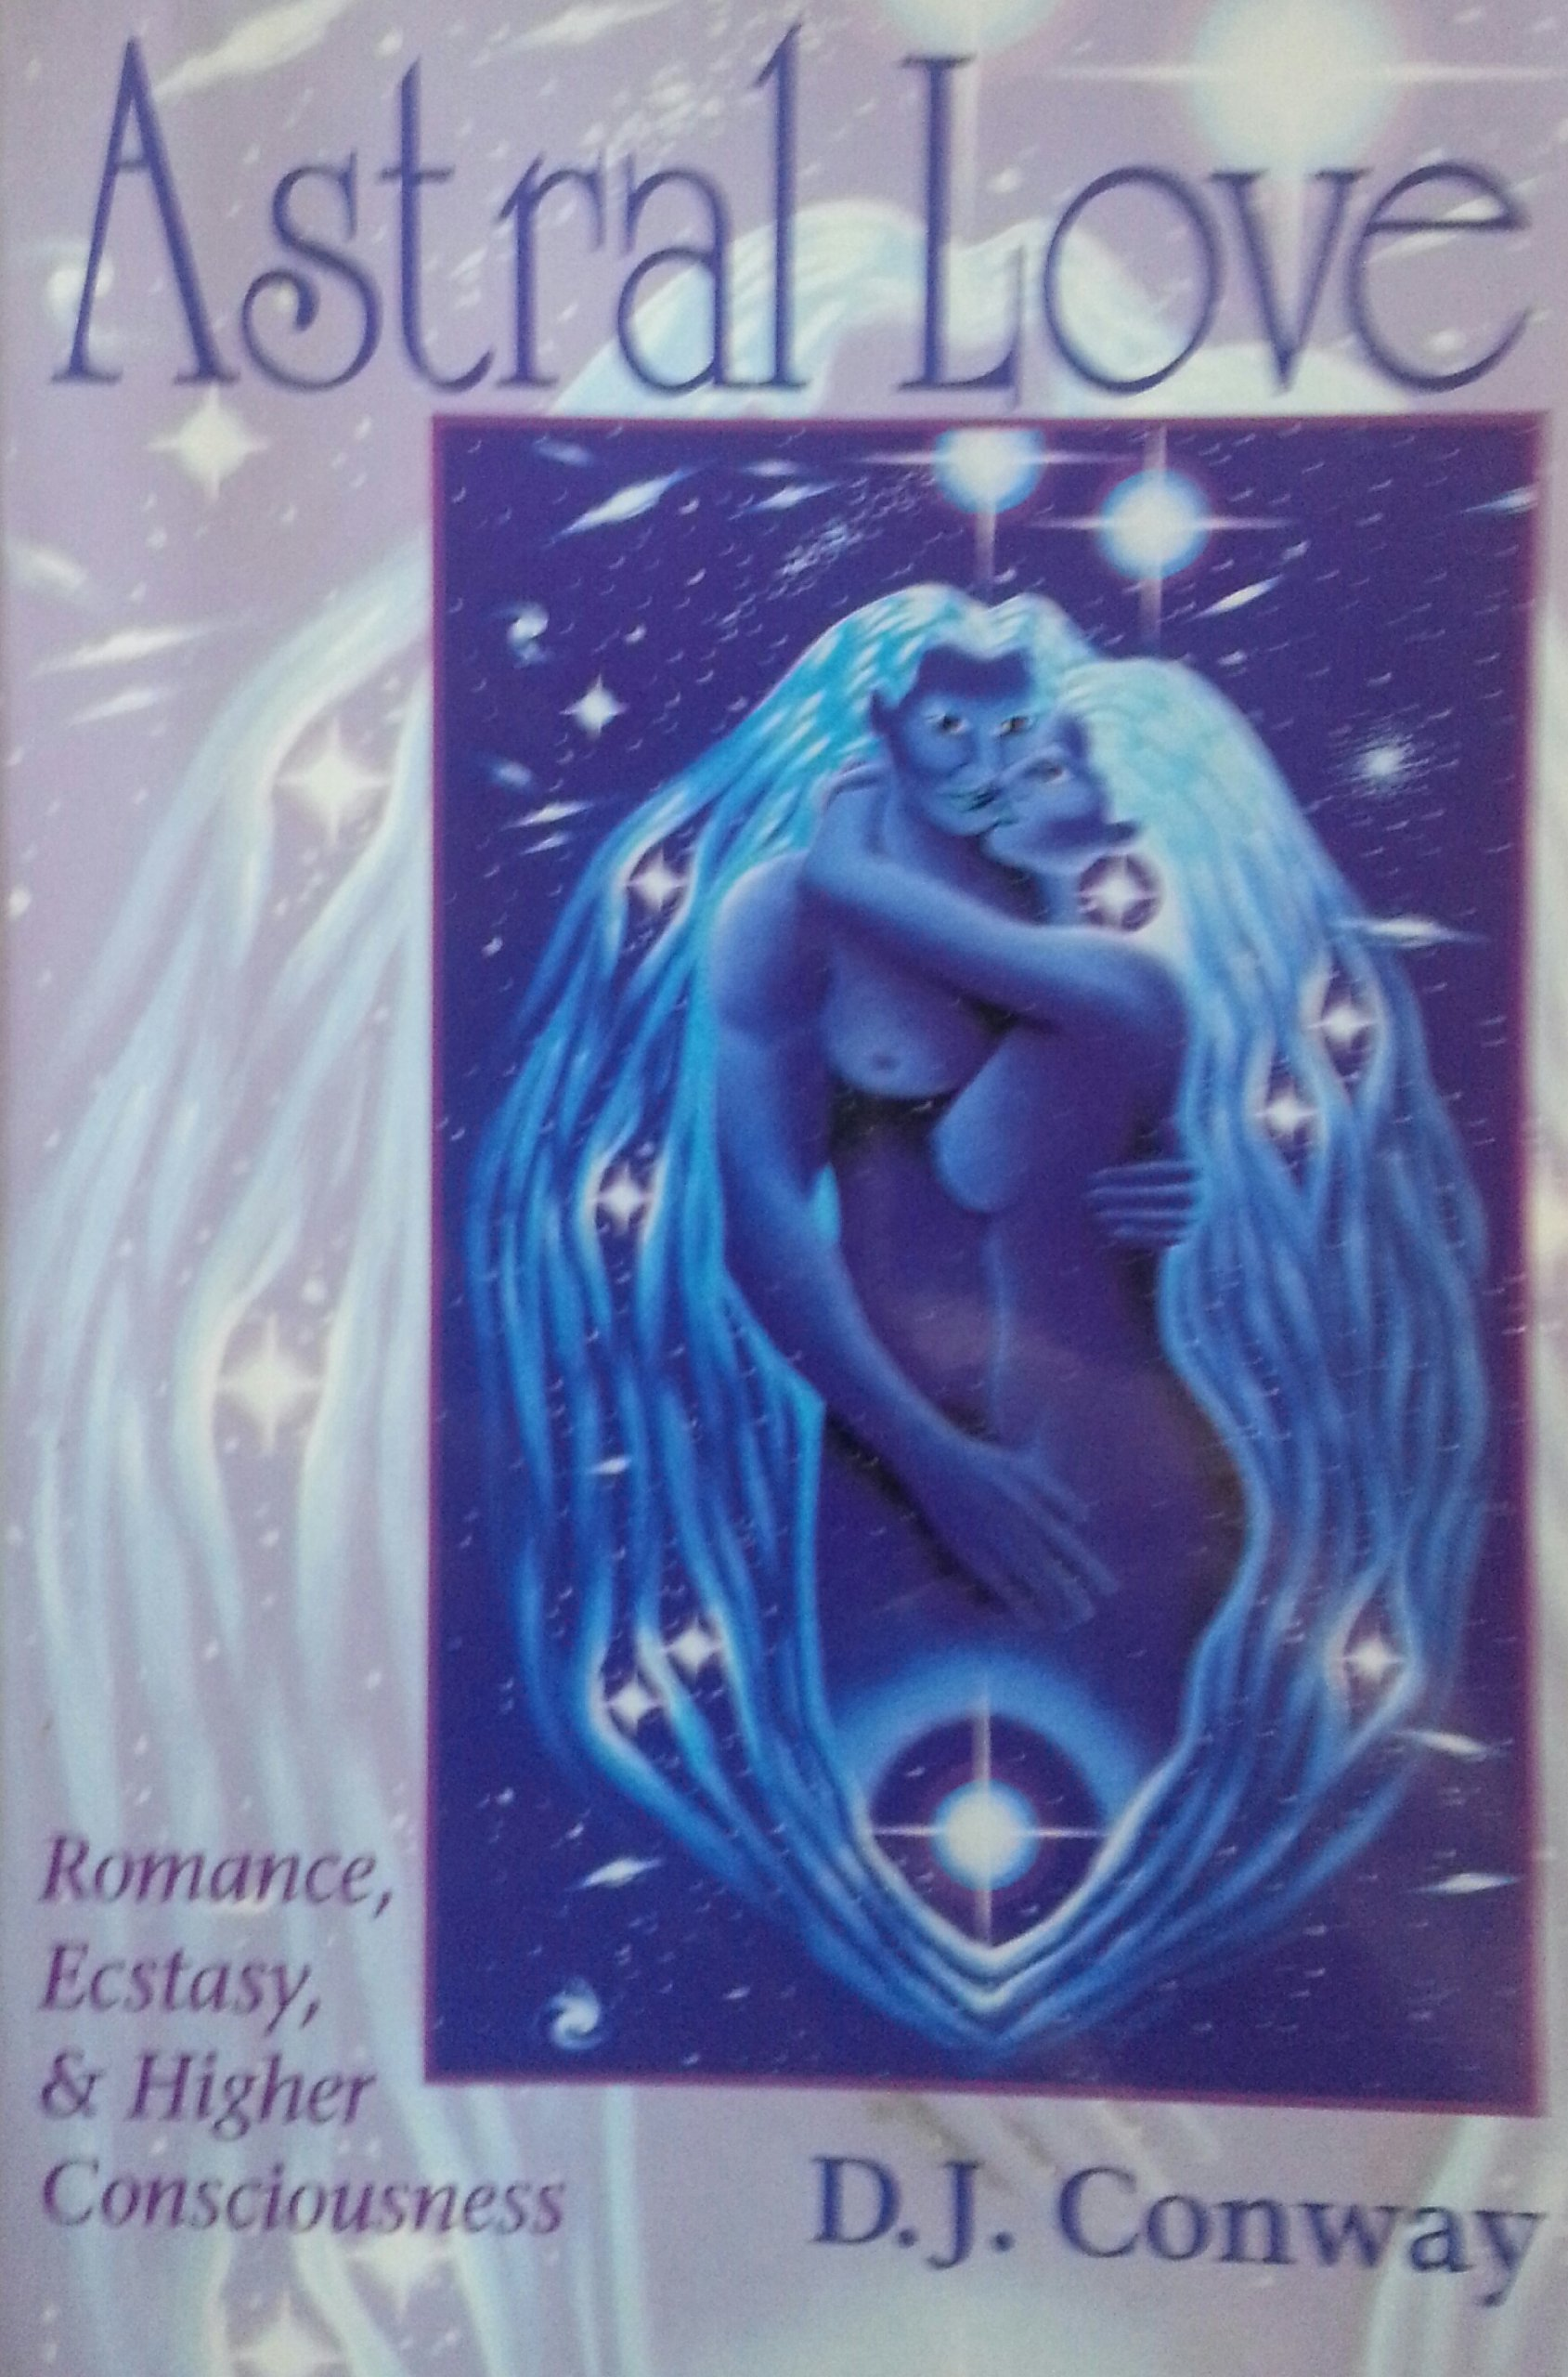 Astral travel and sexuality